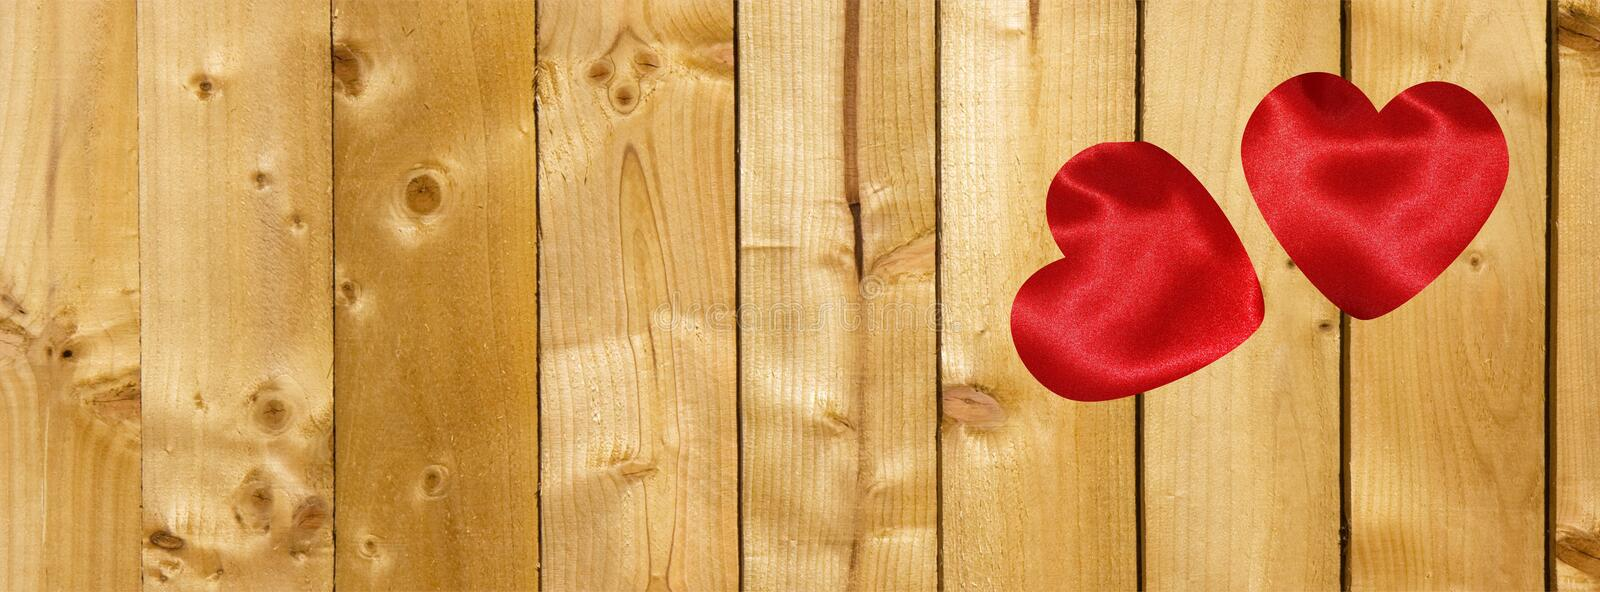 Valentine Facebook cover with hearts on  wooden planks background royalty free illustration